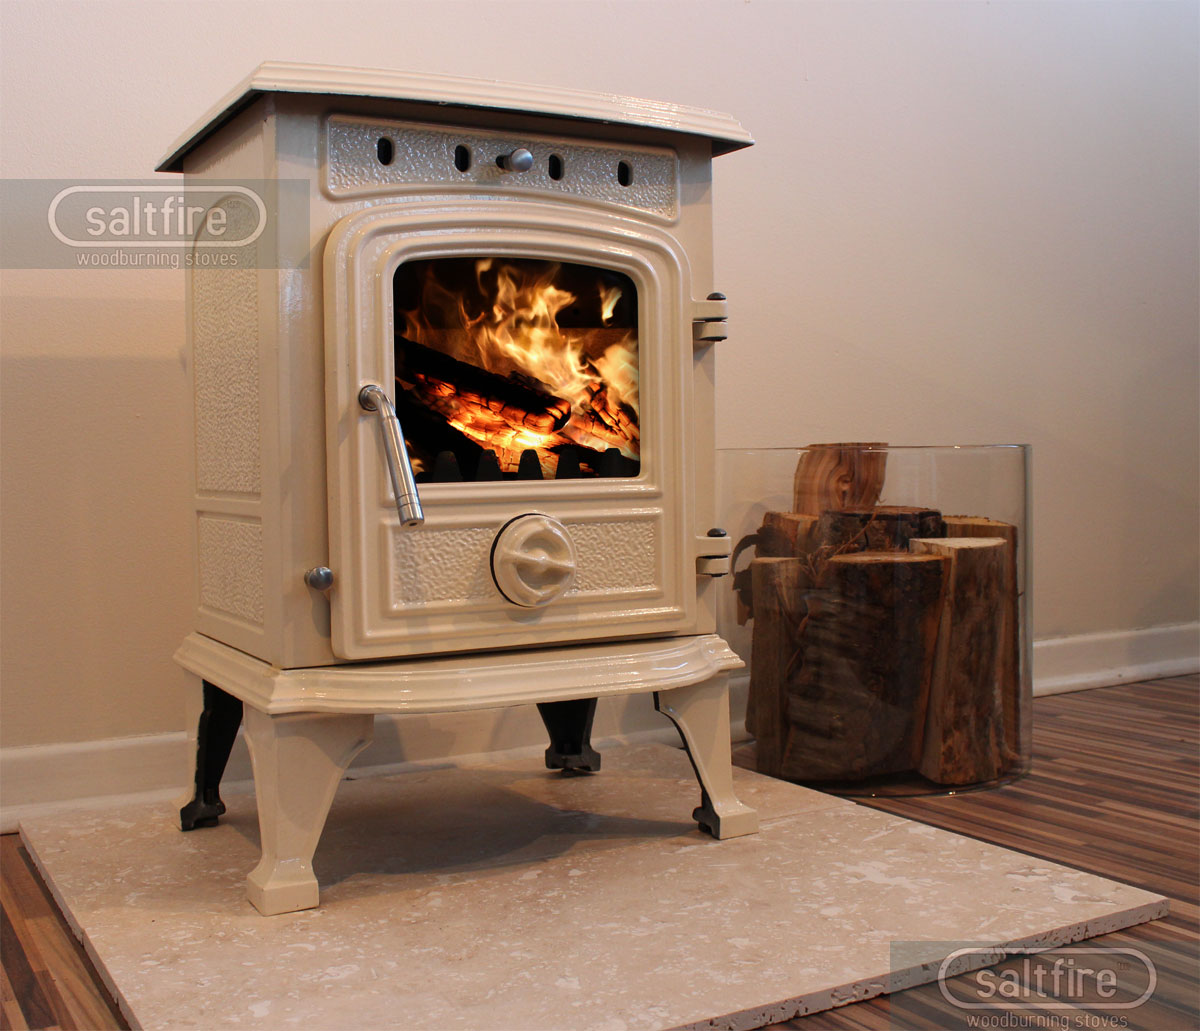 Hendon cream enamel stoves woodburning stoves Wood burning stoves